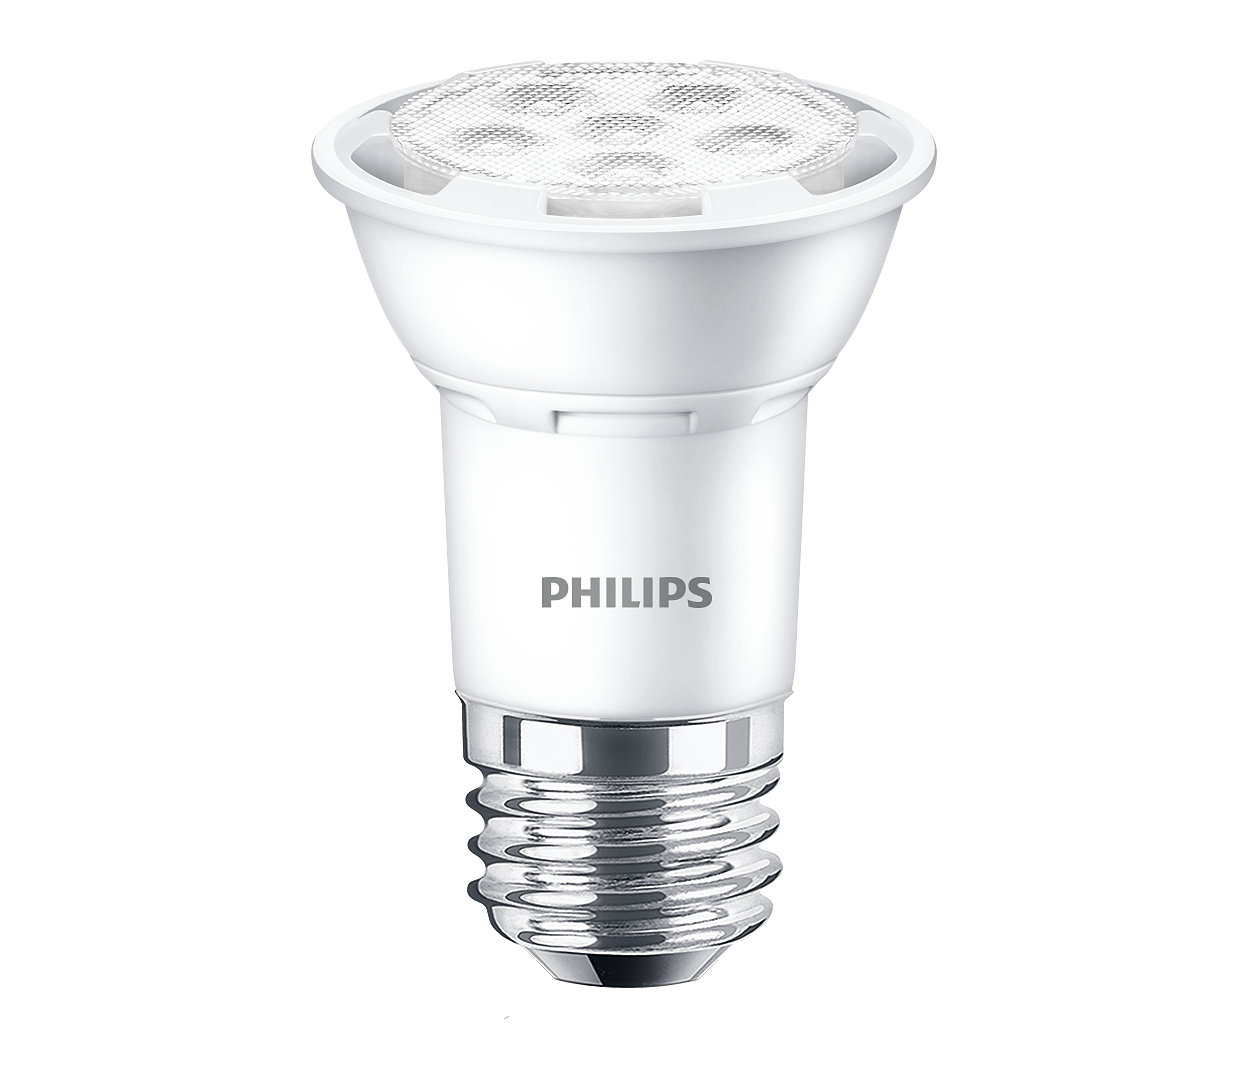 Philips Led 6w 50w Mr16 Medium Base Bright White 3000k: AmbientLED PAR16 7W 35D 830 D MR16/GU10/PAR16